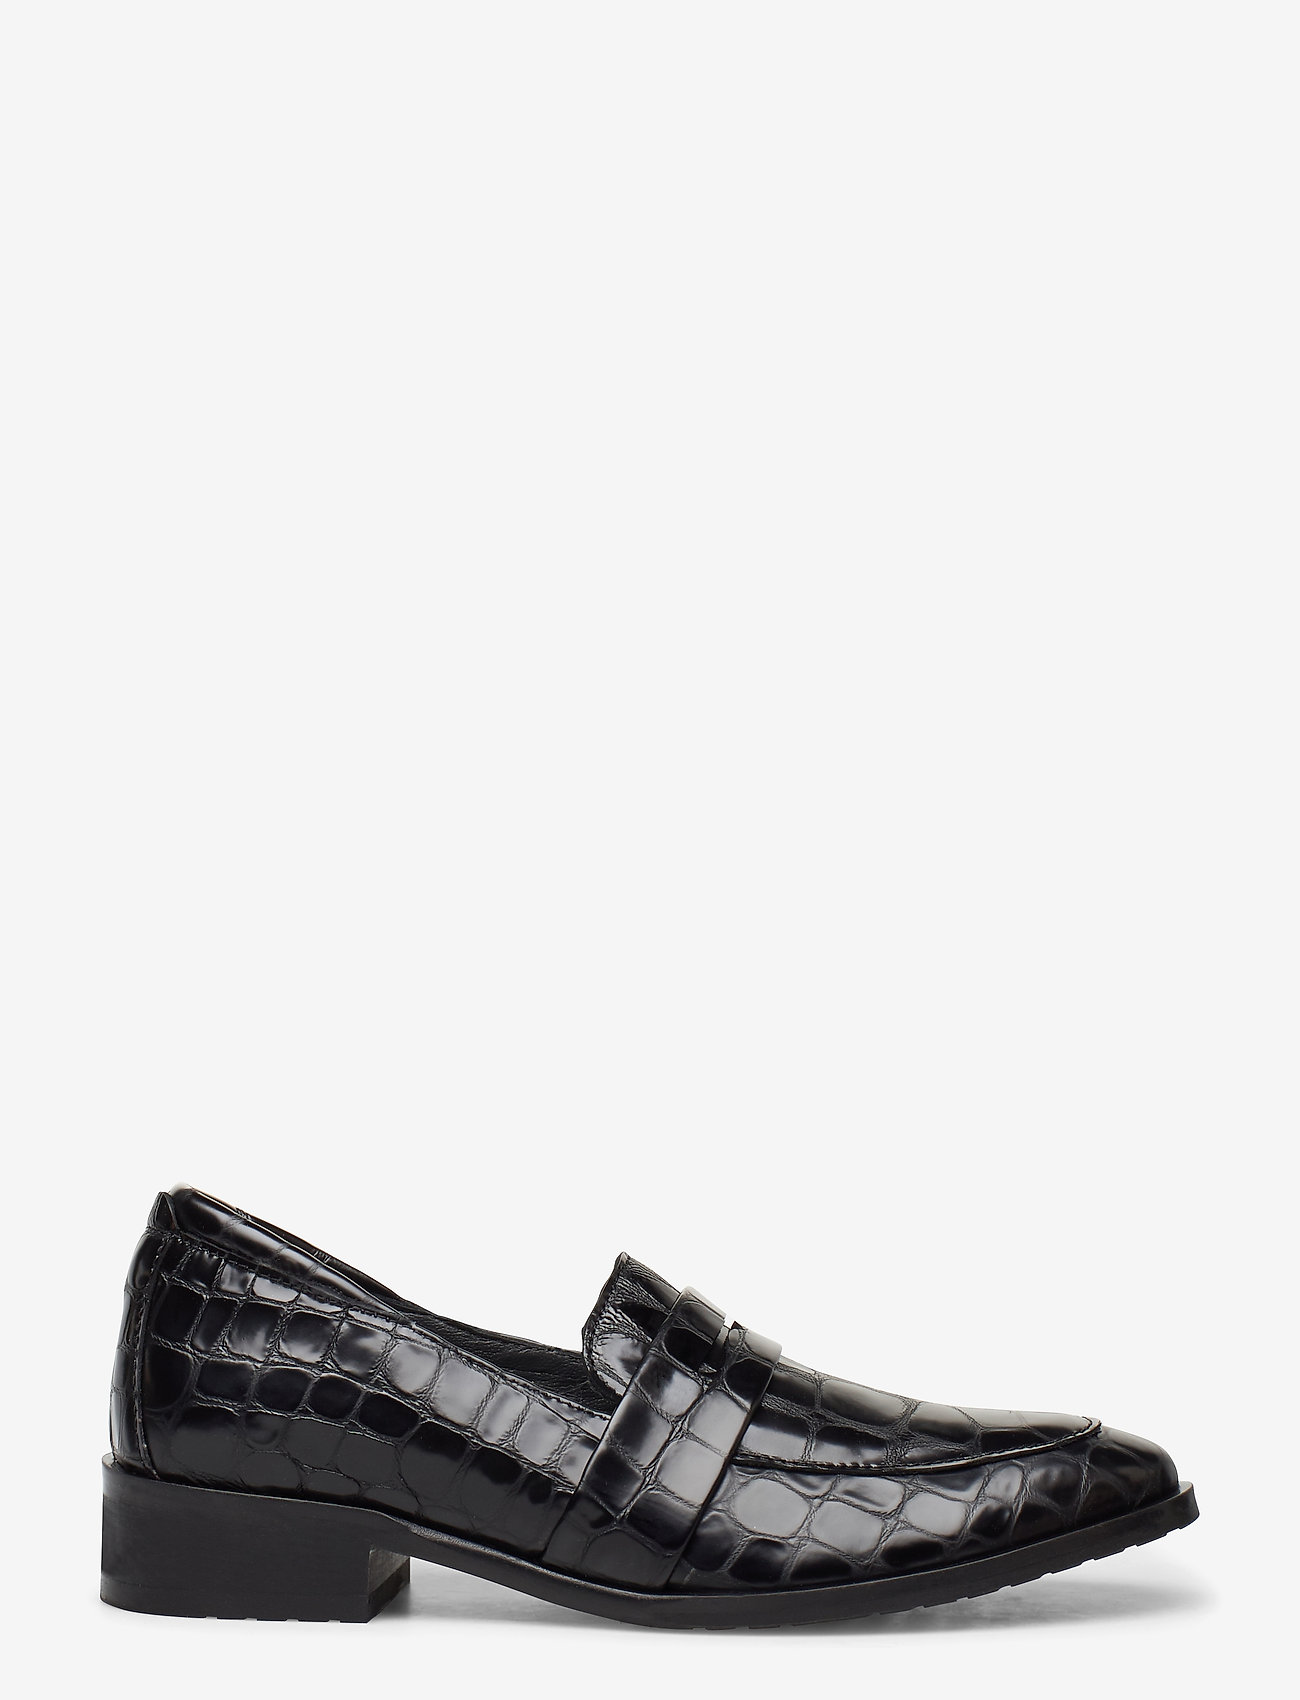 ANGULUS - Loafer - flat - instappers - 1674 black croco - 1